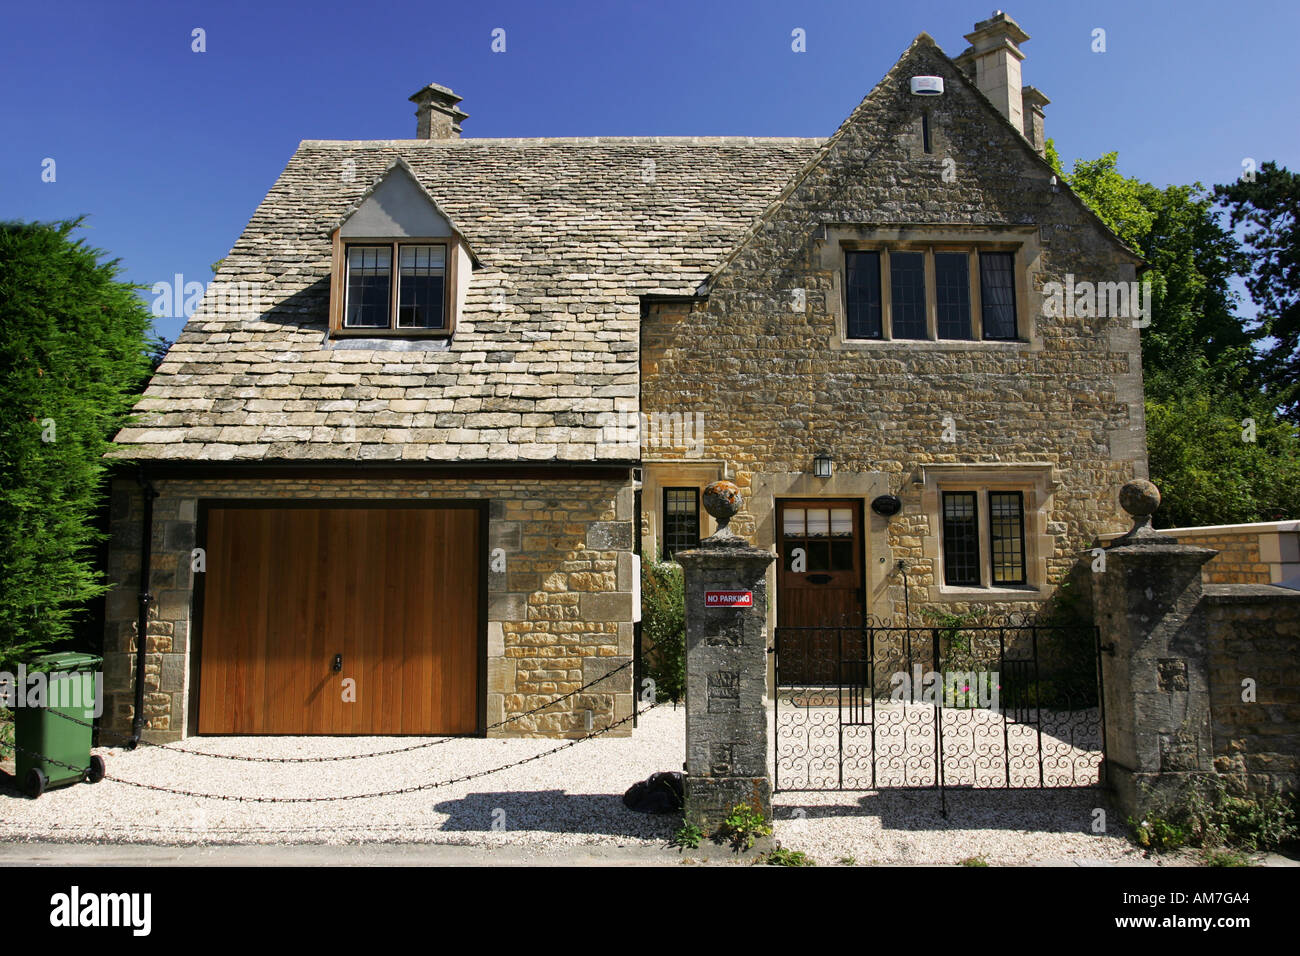 New typical cotswold limestone town house in popular English tourist destination Bourton on the Water Gloucestershire Stock Photo